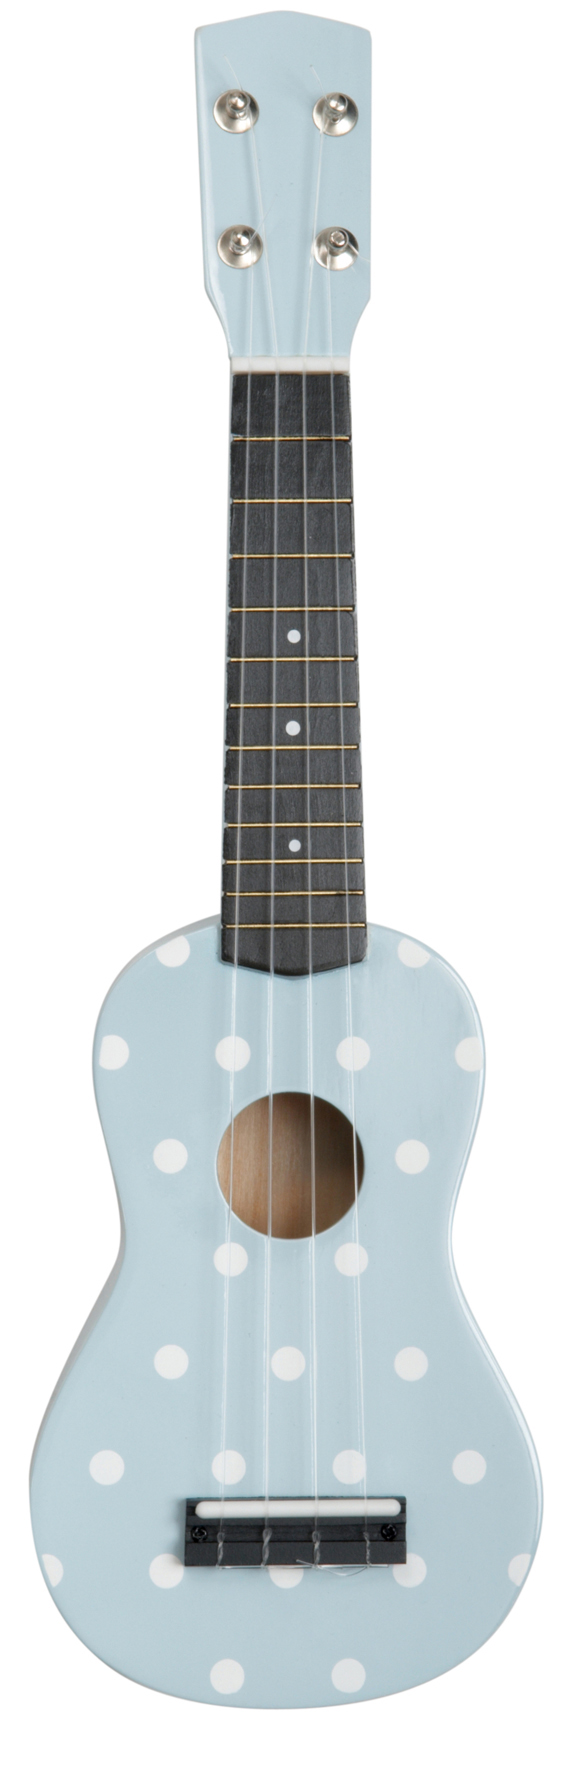 Inspire a budding rock star with this fabulous acoustic guitar. Perfectly sized to fit little ones a